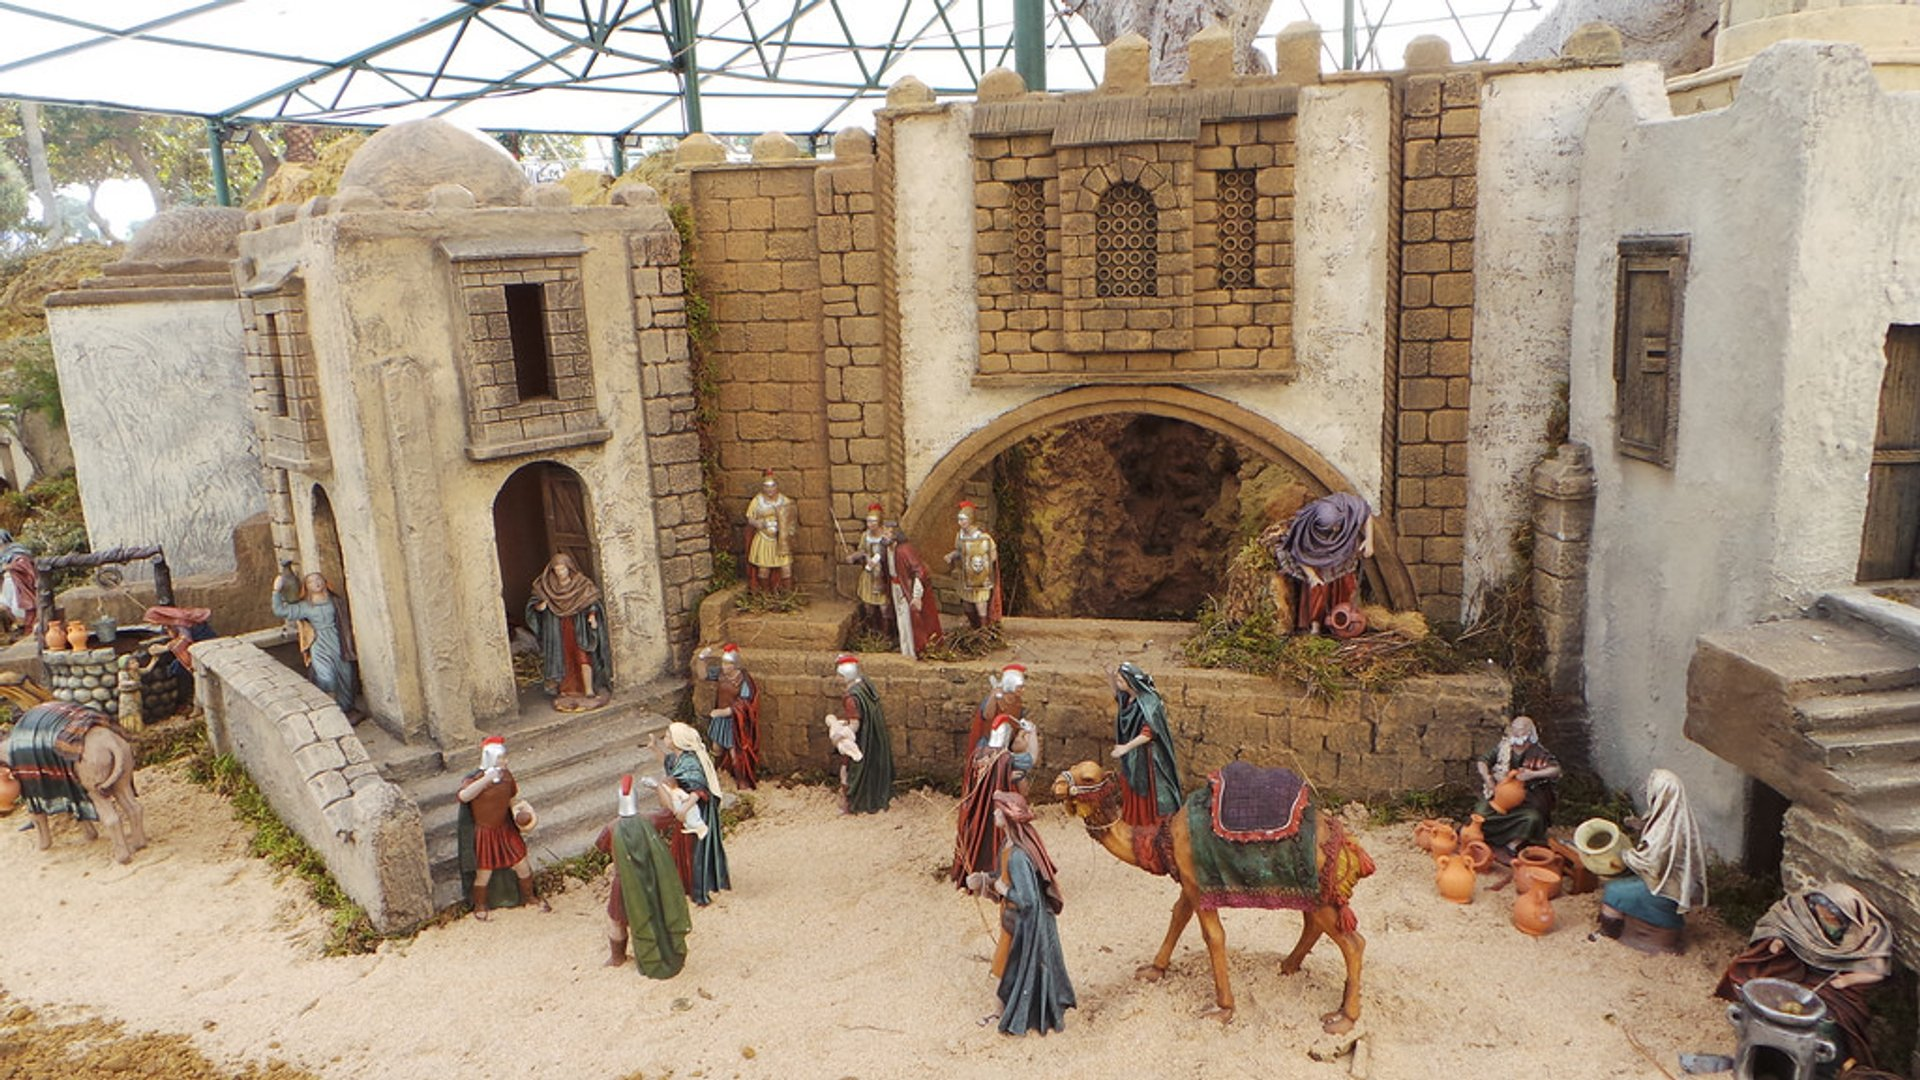 Christmas Belén or Nativity Scene in Canary Islands - Best Season 2020